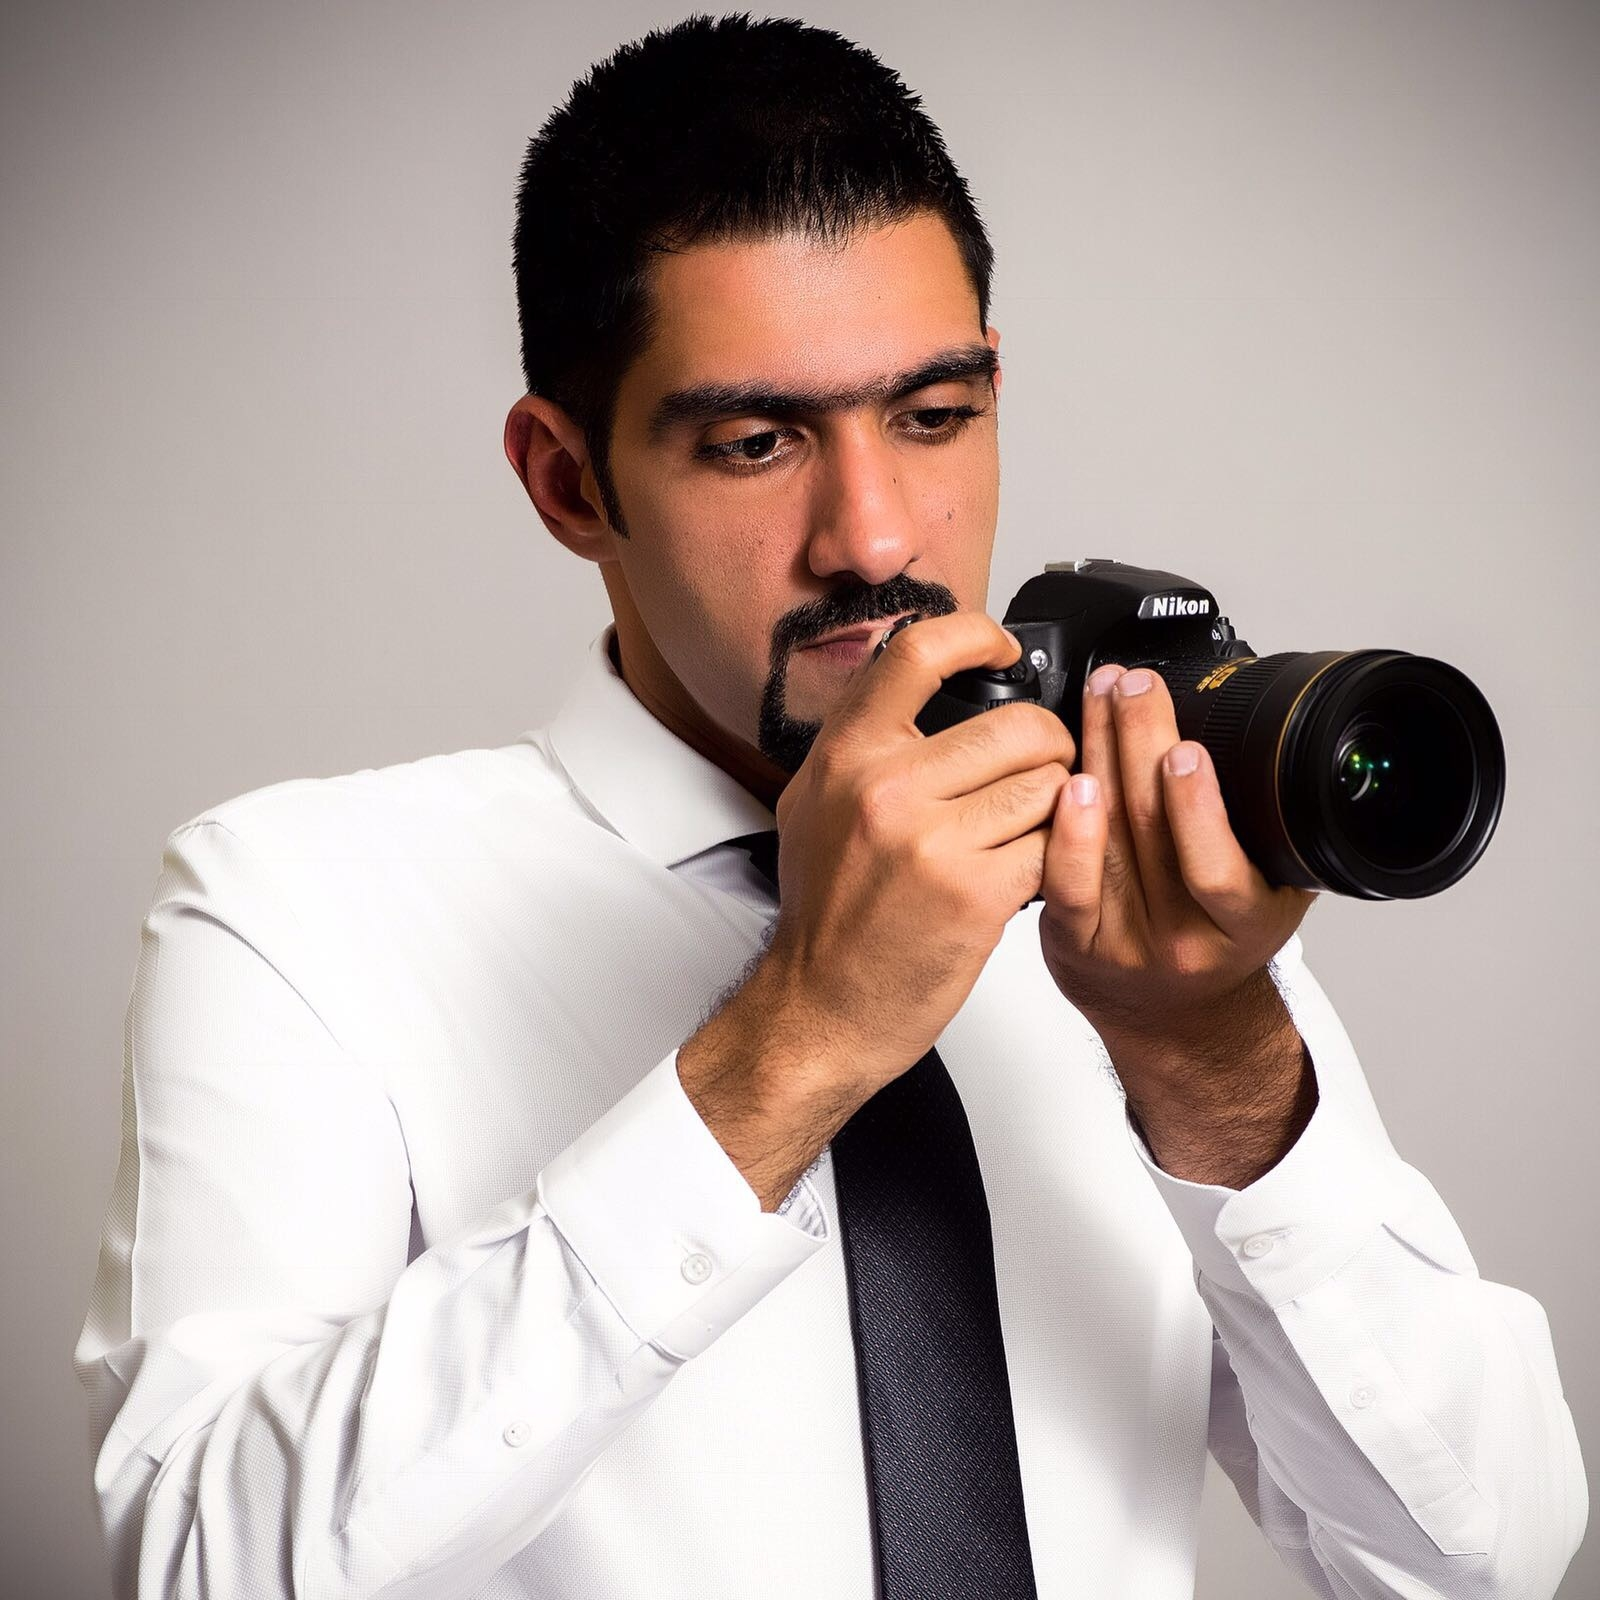 Hussain Shamo  Community Table Photographer  @hussaingram